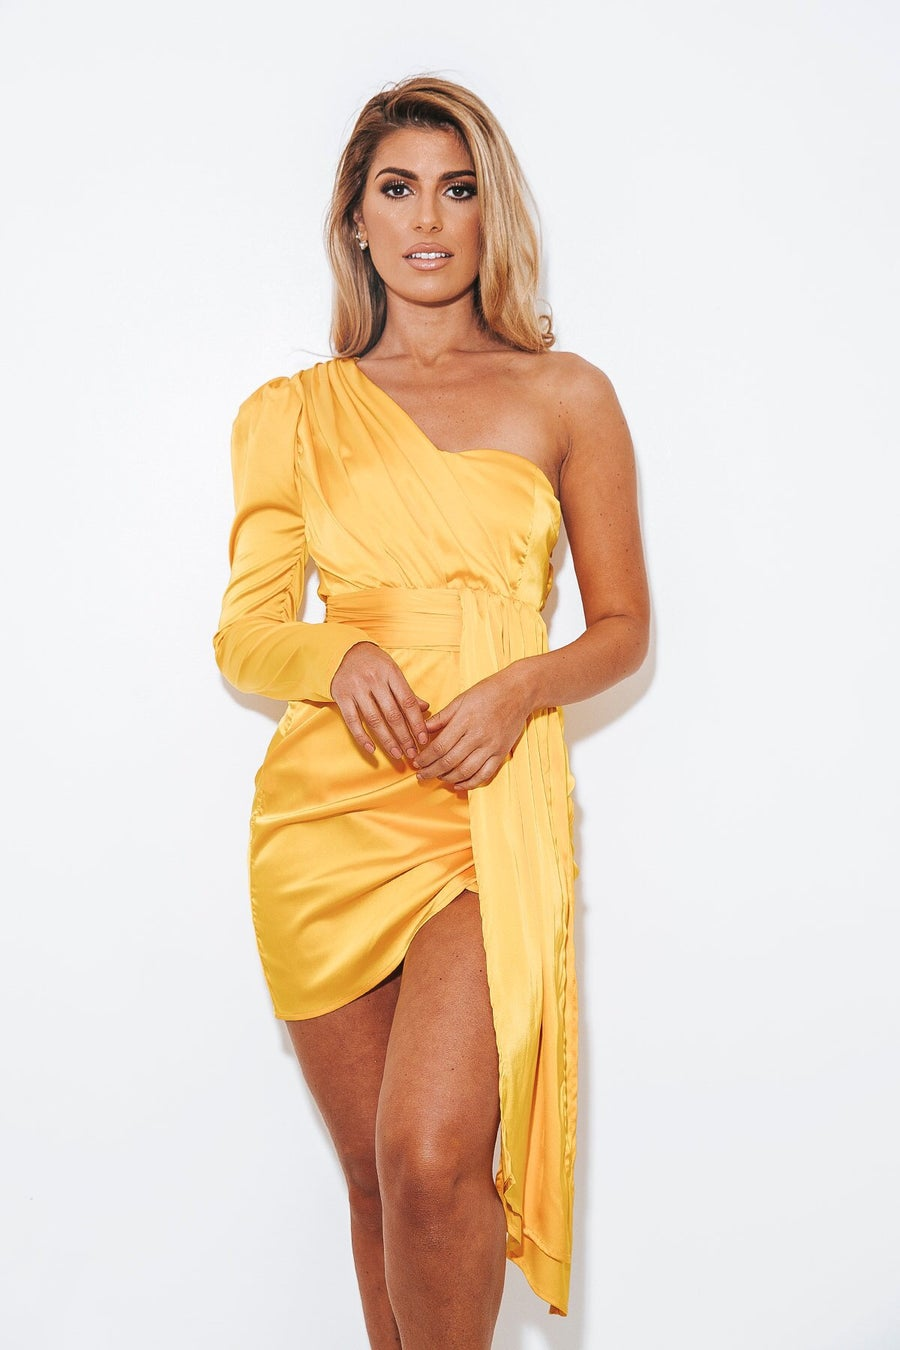 Image of 'Run the Show' Dress (50% off)